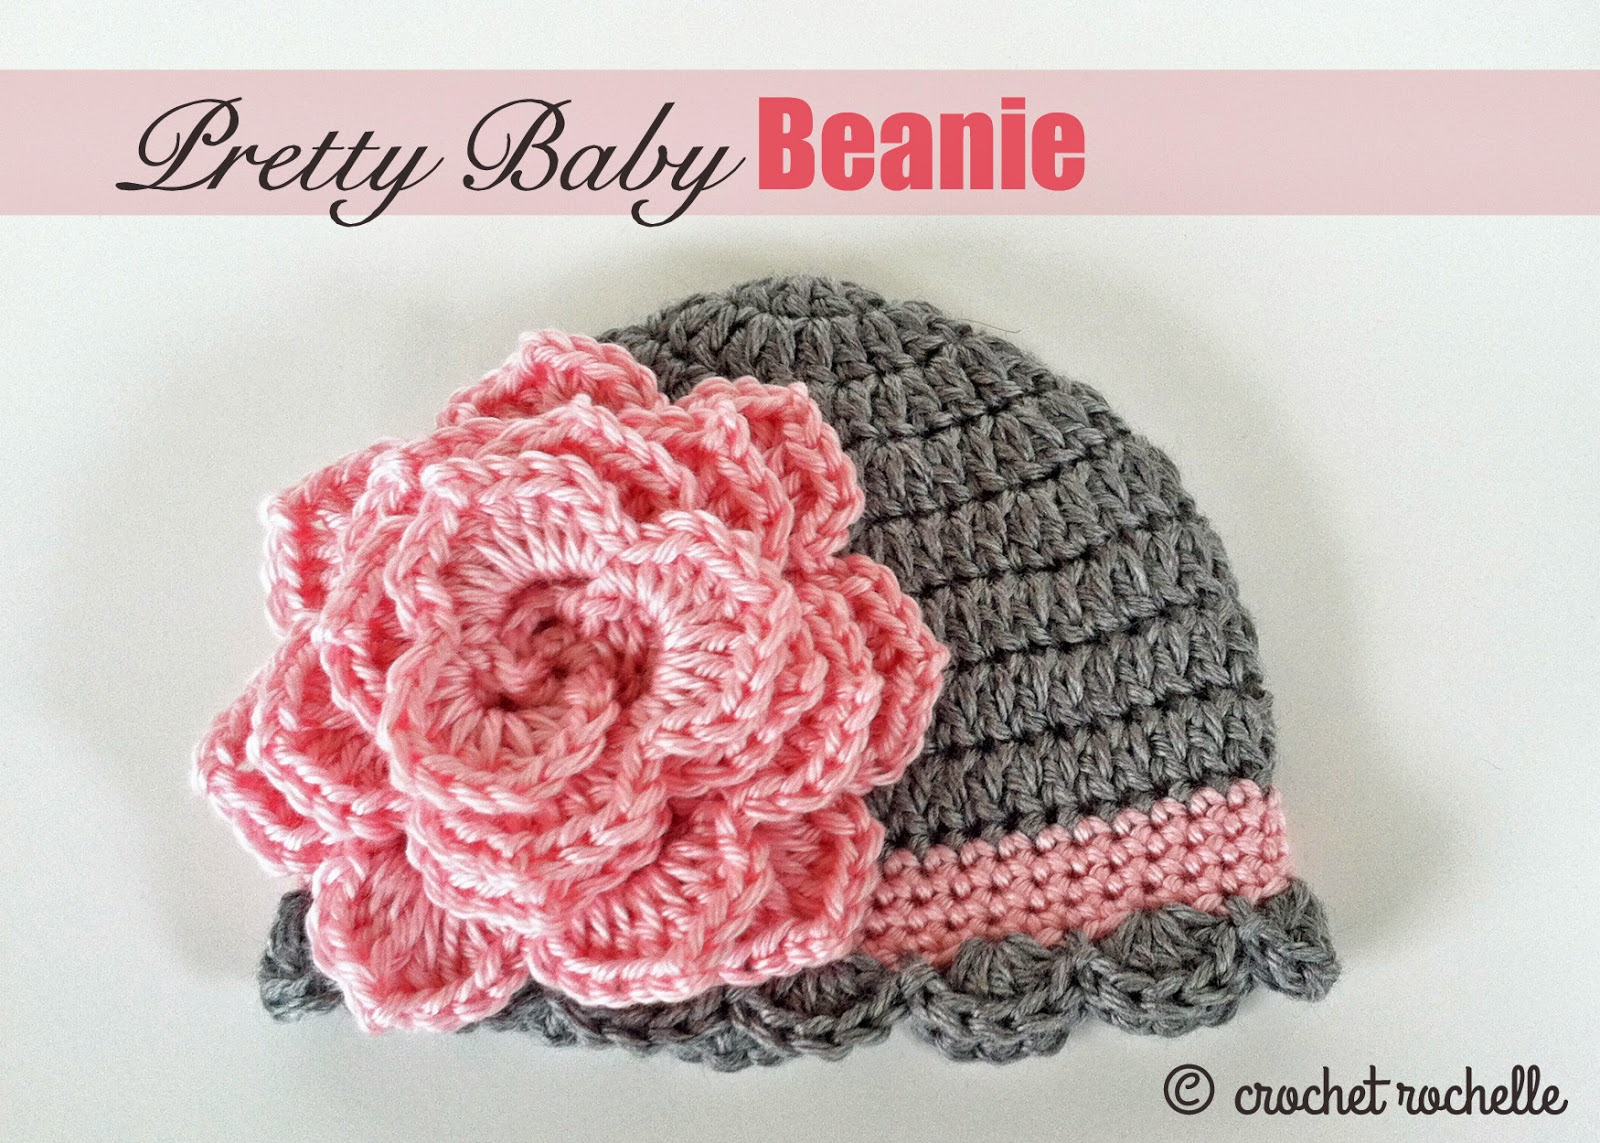 Crochet Hat Pattern For 8 Month Old : Crochet Rochelle: Pretty Baby Beanie